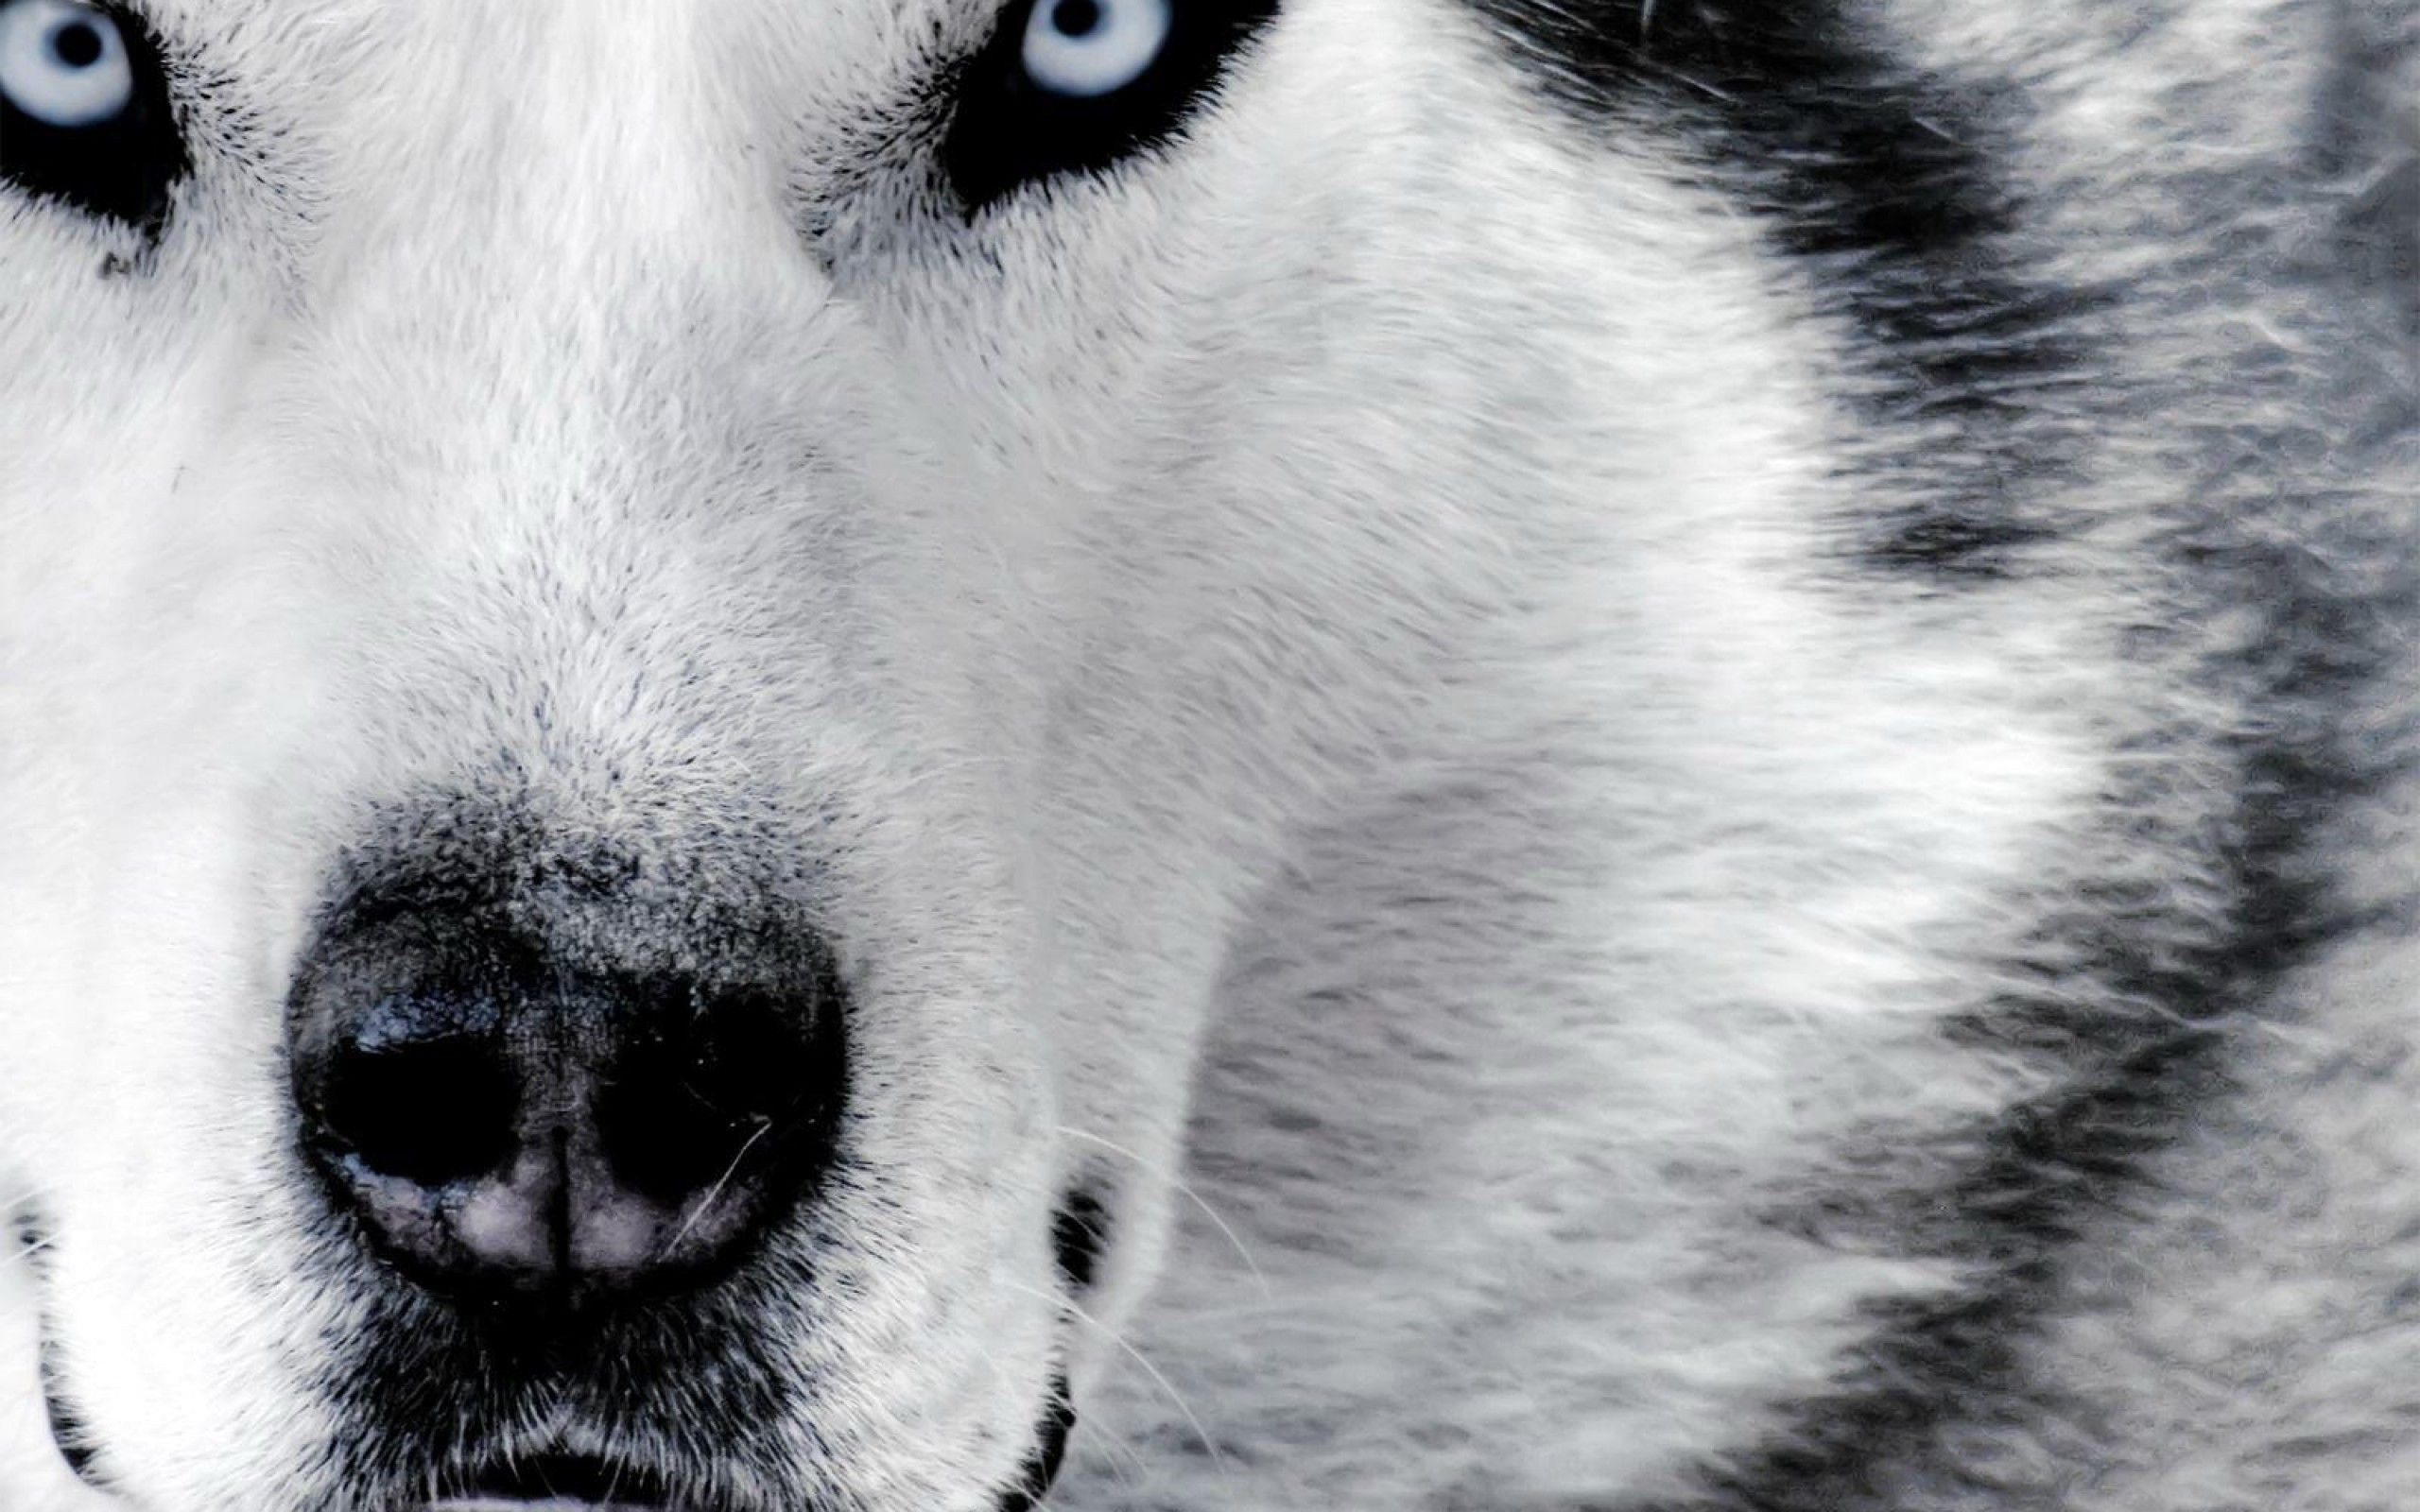 2560x1600  Wallpaper Hd Wolf Background 1 HD Wallpapers | Hdwalljoy.